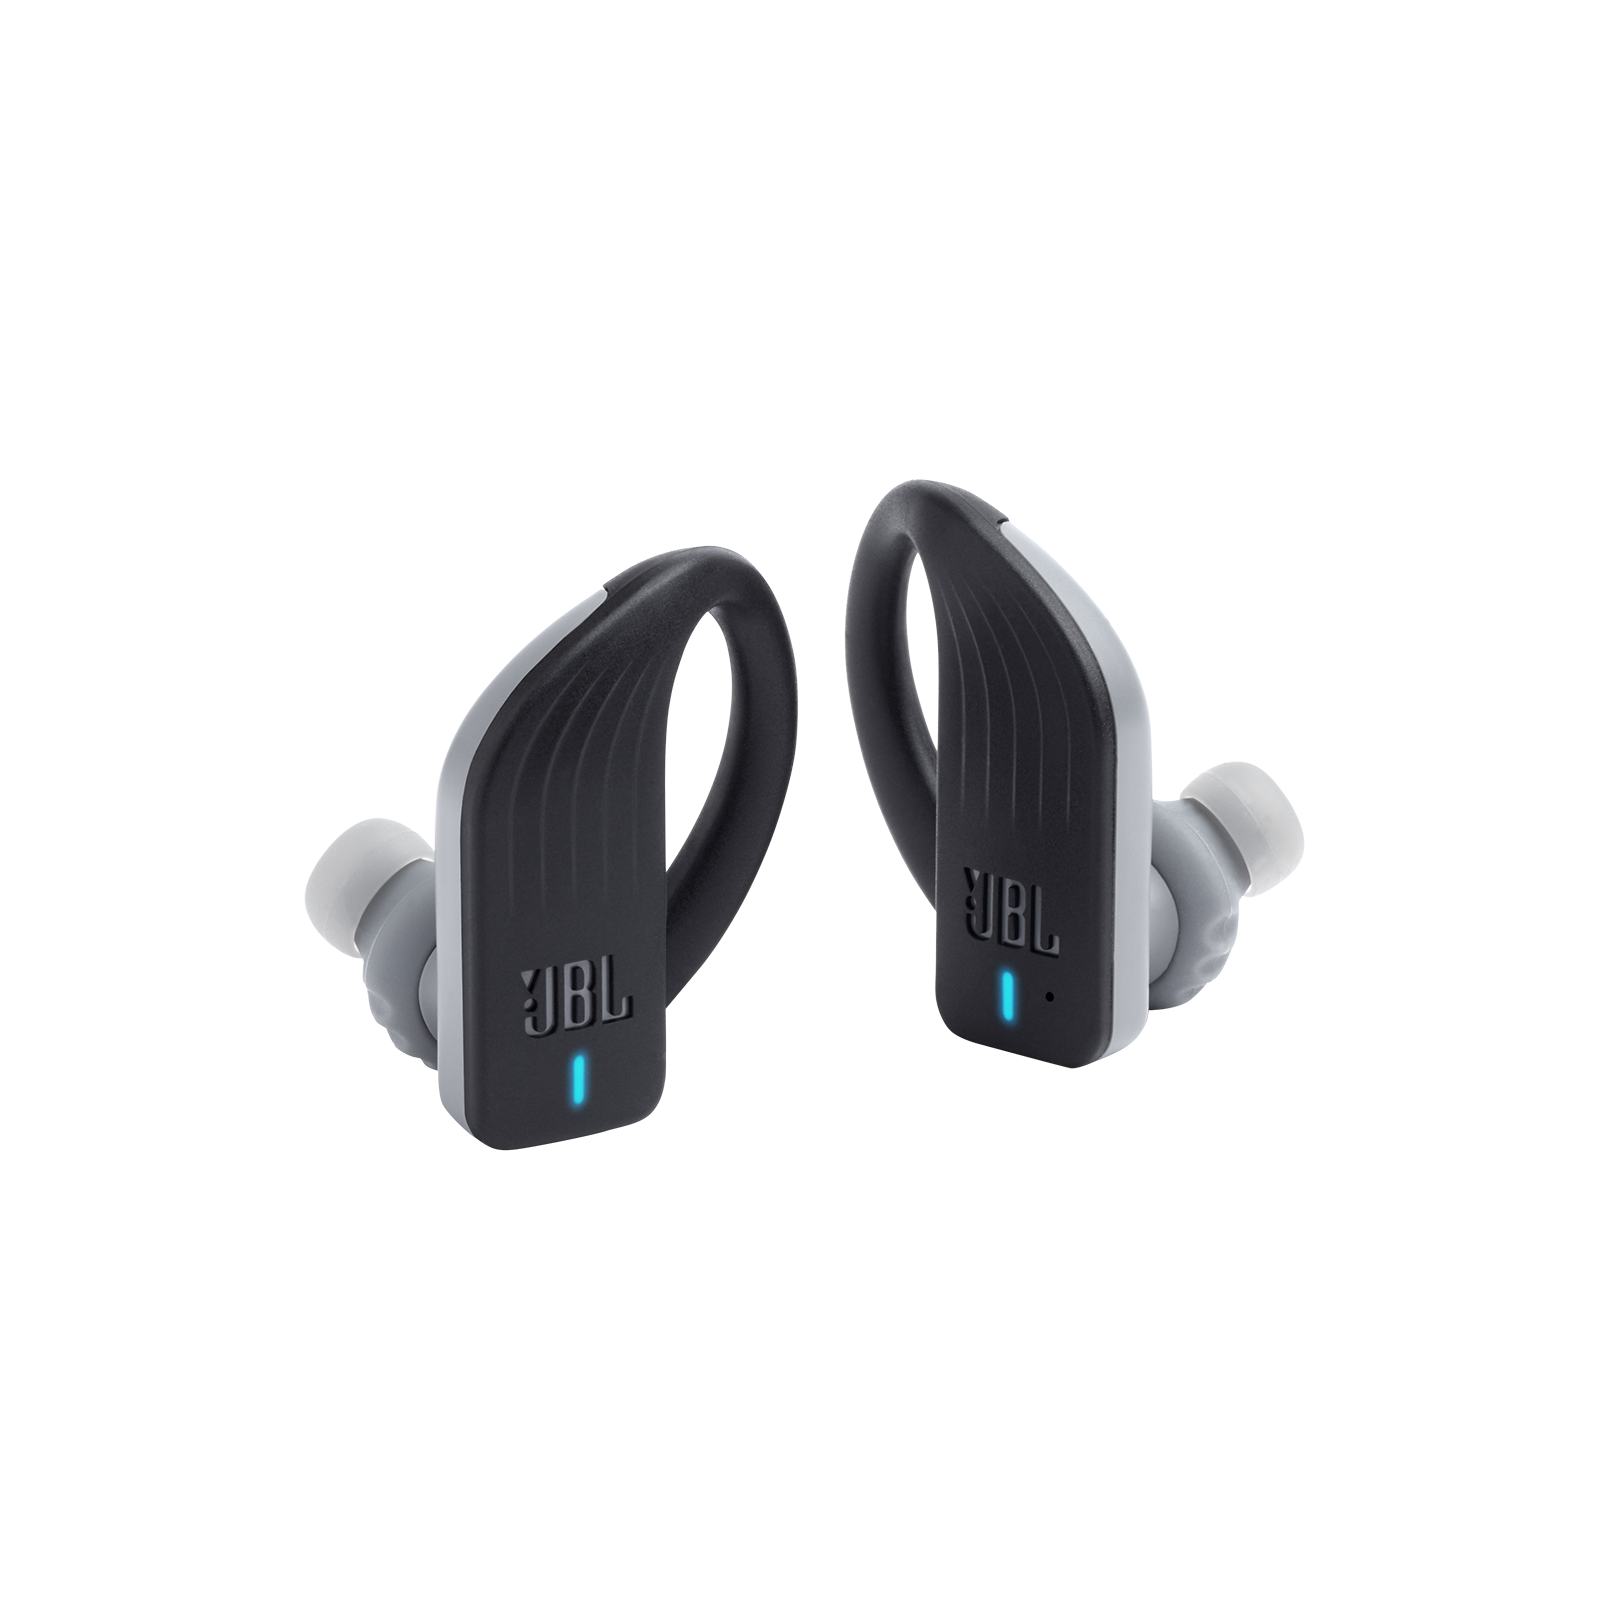 JBL Endurance PEAK - Black - Waterproof True Wireless In-Ear Sport Headphones - Hero